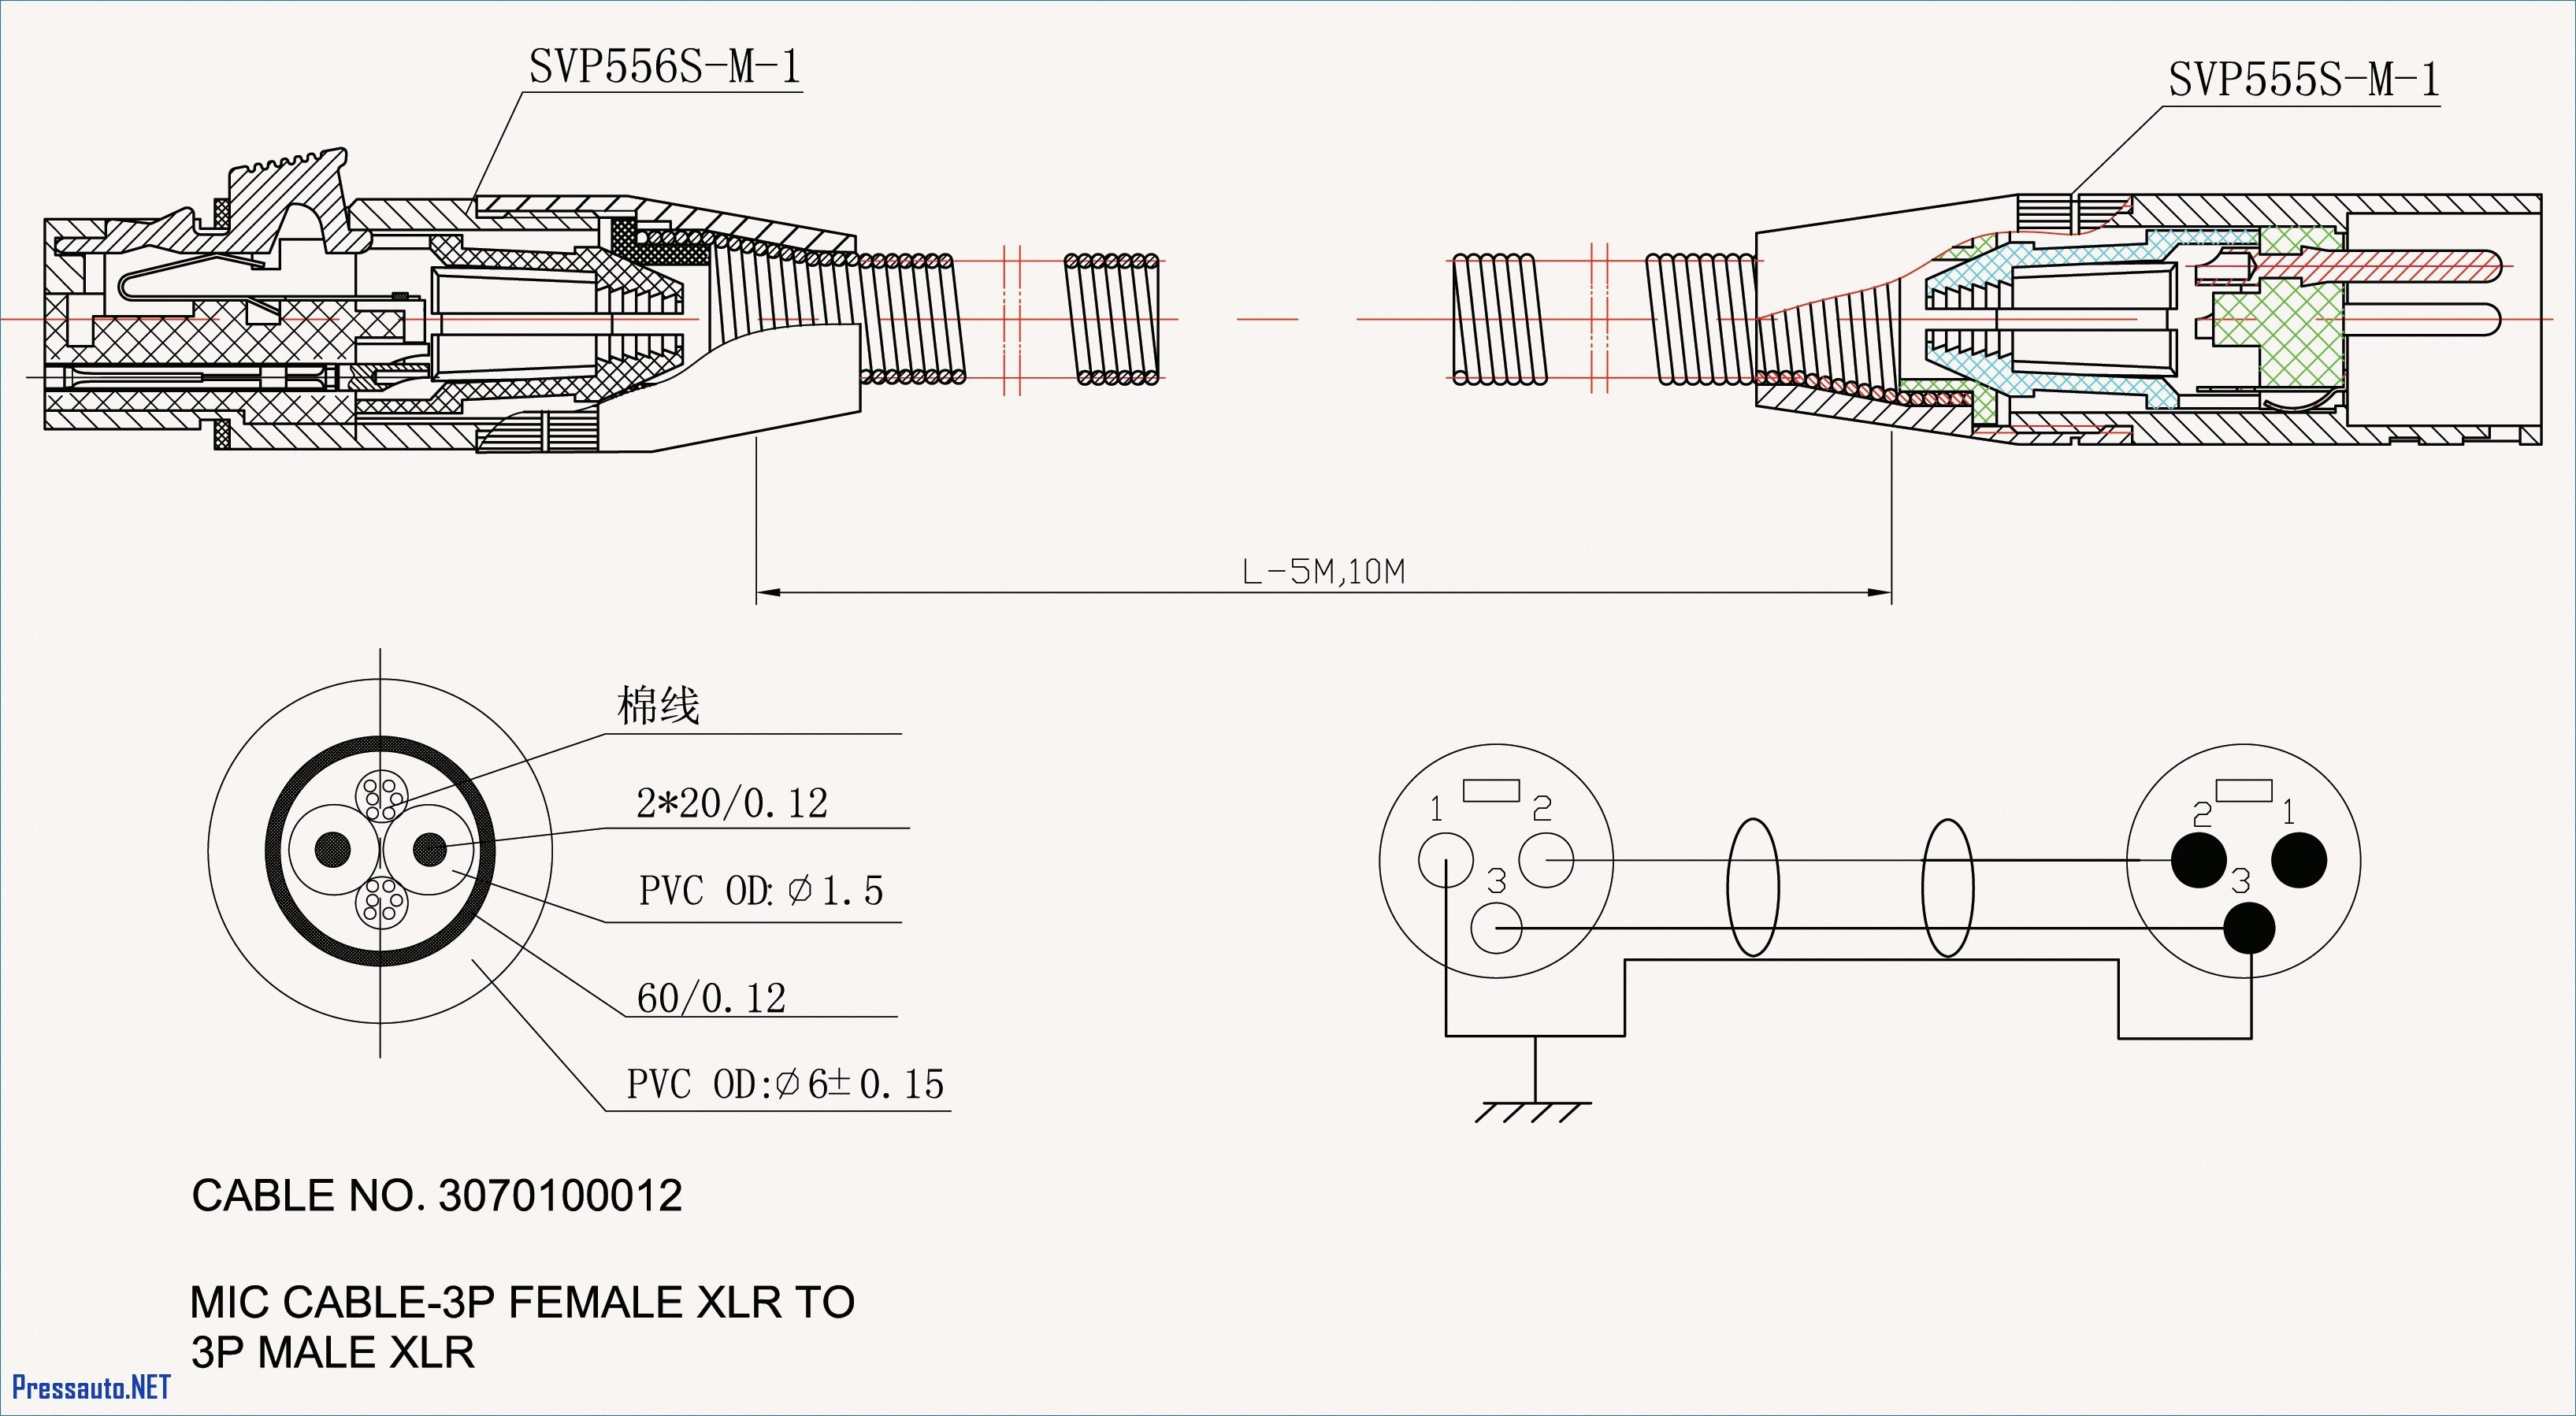 Hawk Car Alarm Wiring Diagram Wiring Diagram for Trailer with Brakes Fresh Wiring Diagram Trailer Of Hawk Car Alarm Wiring Diagram